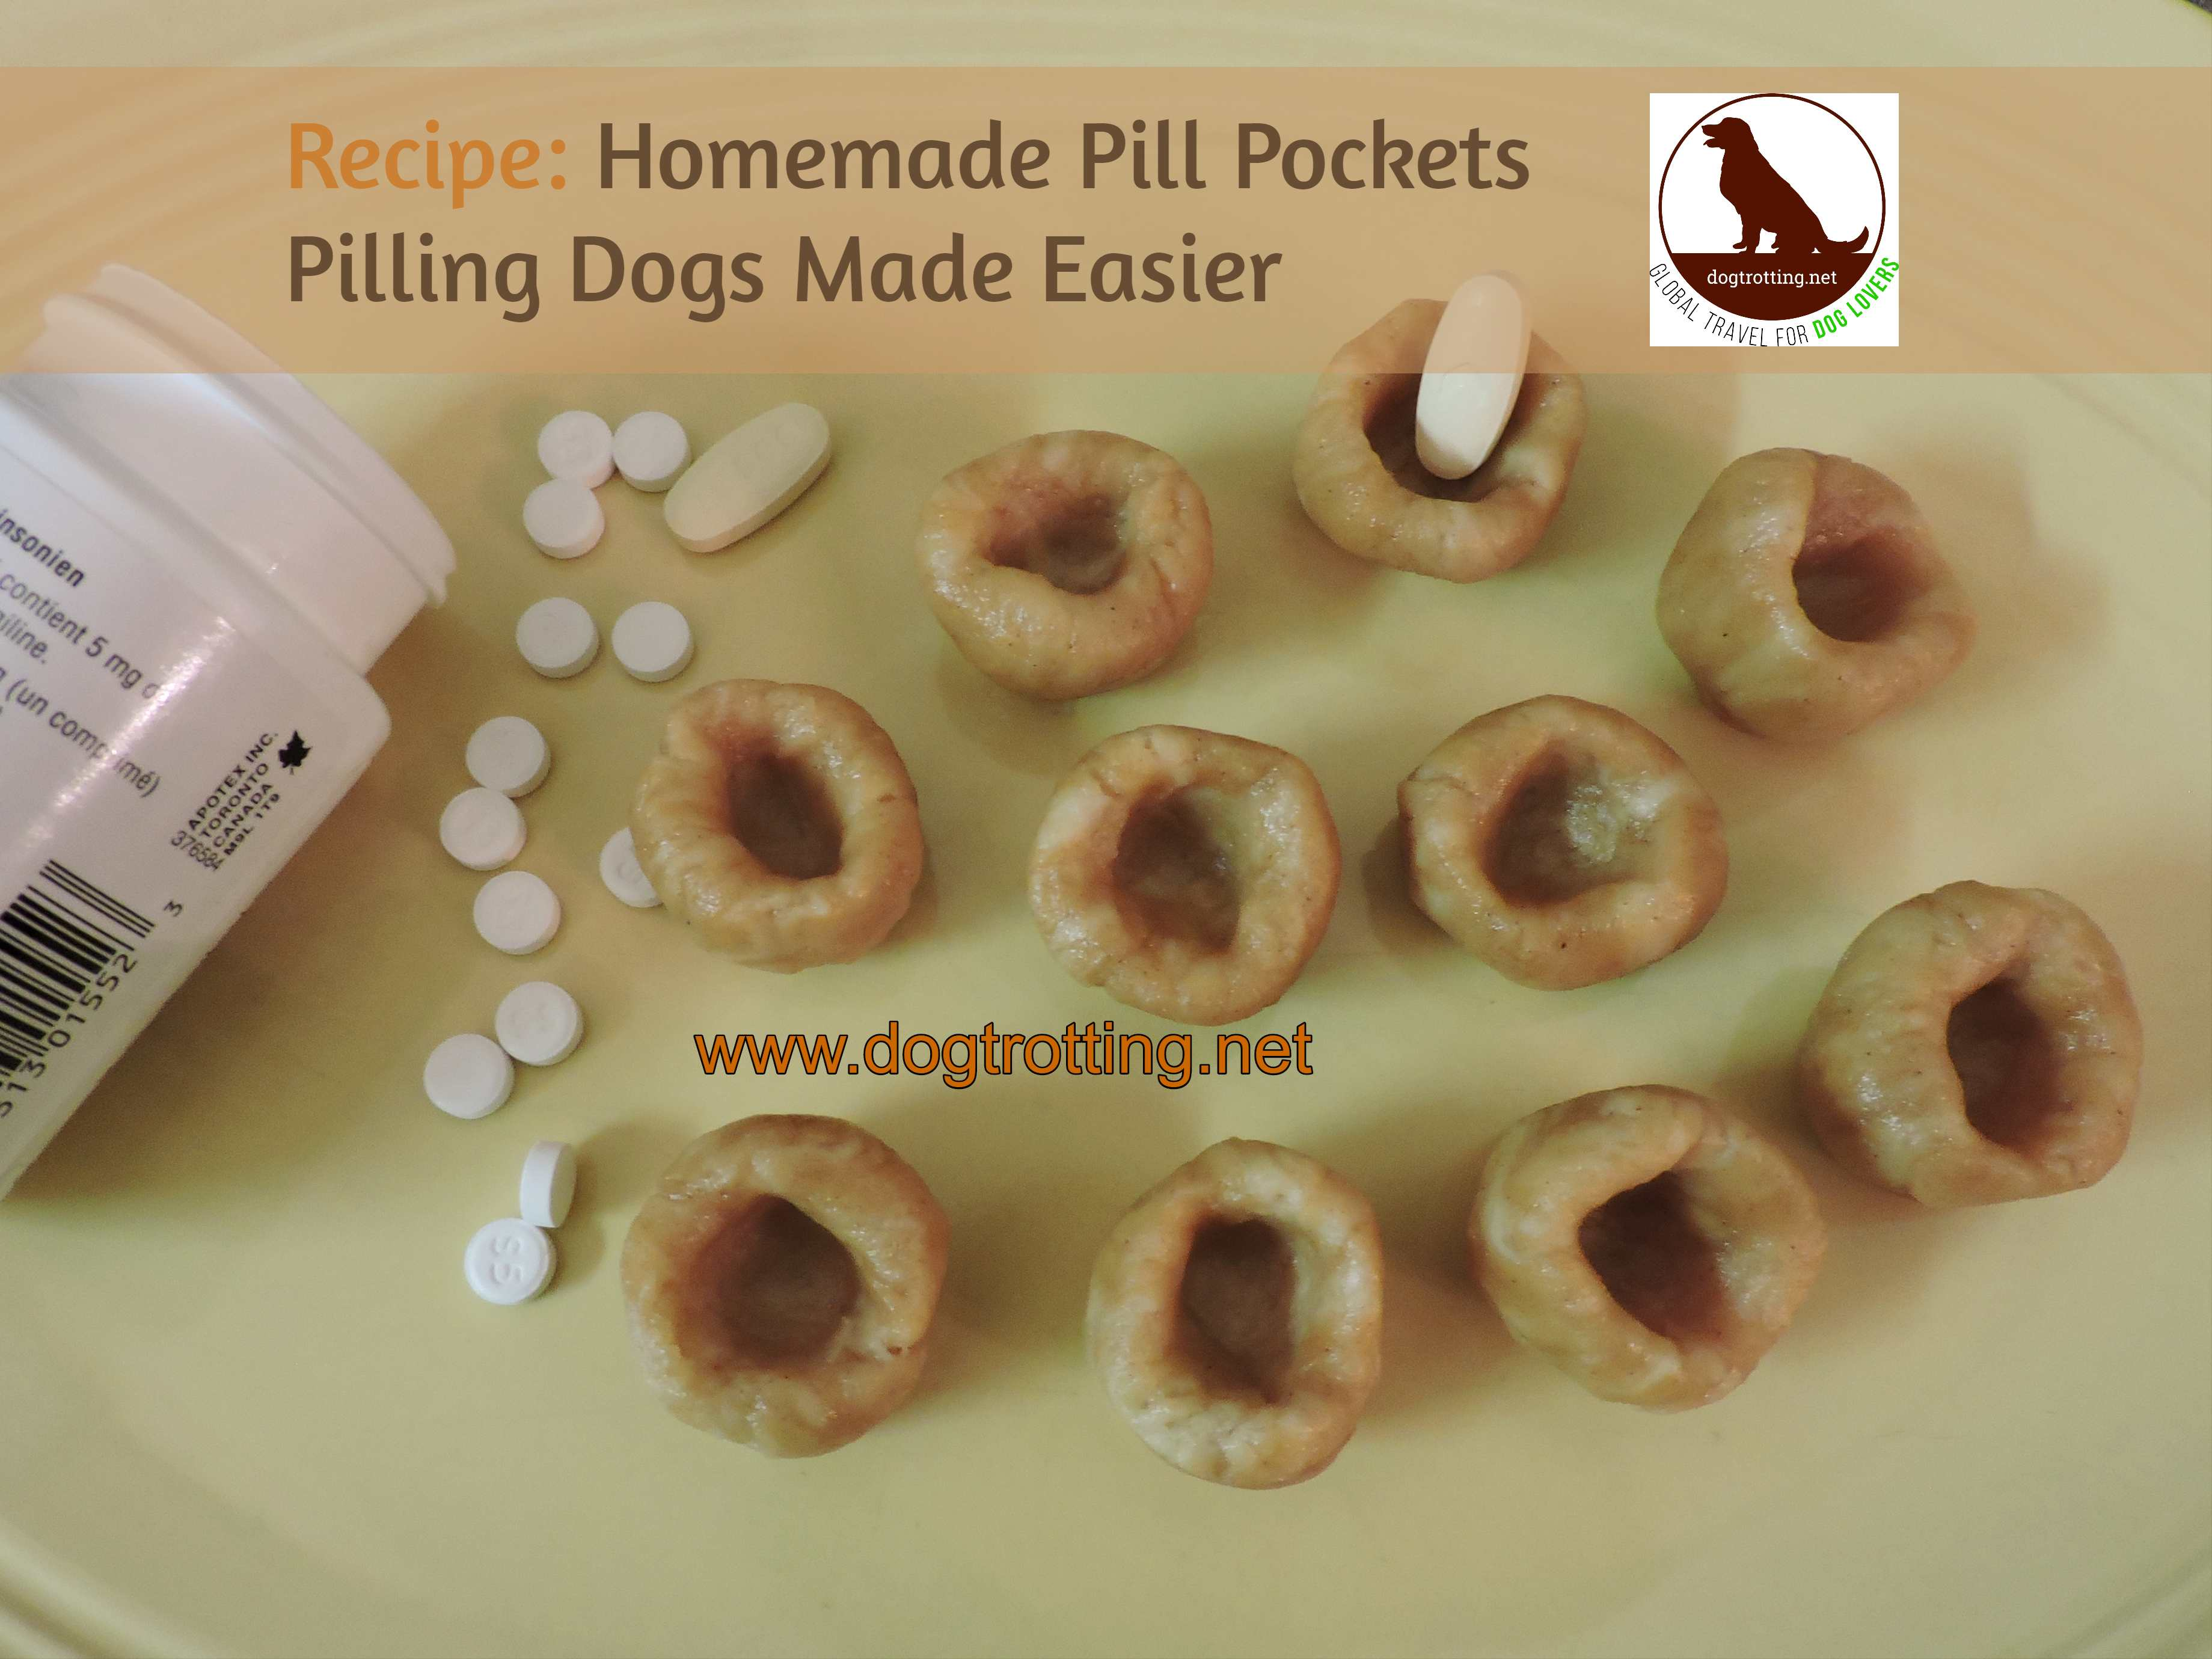 Homemade pill pockets for dogs